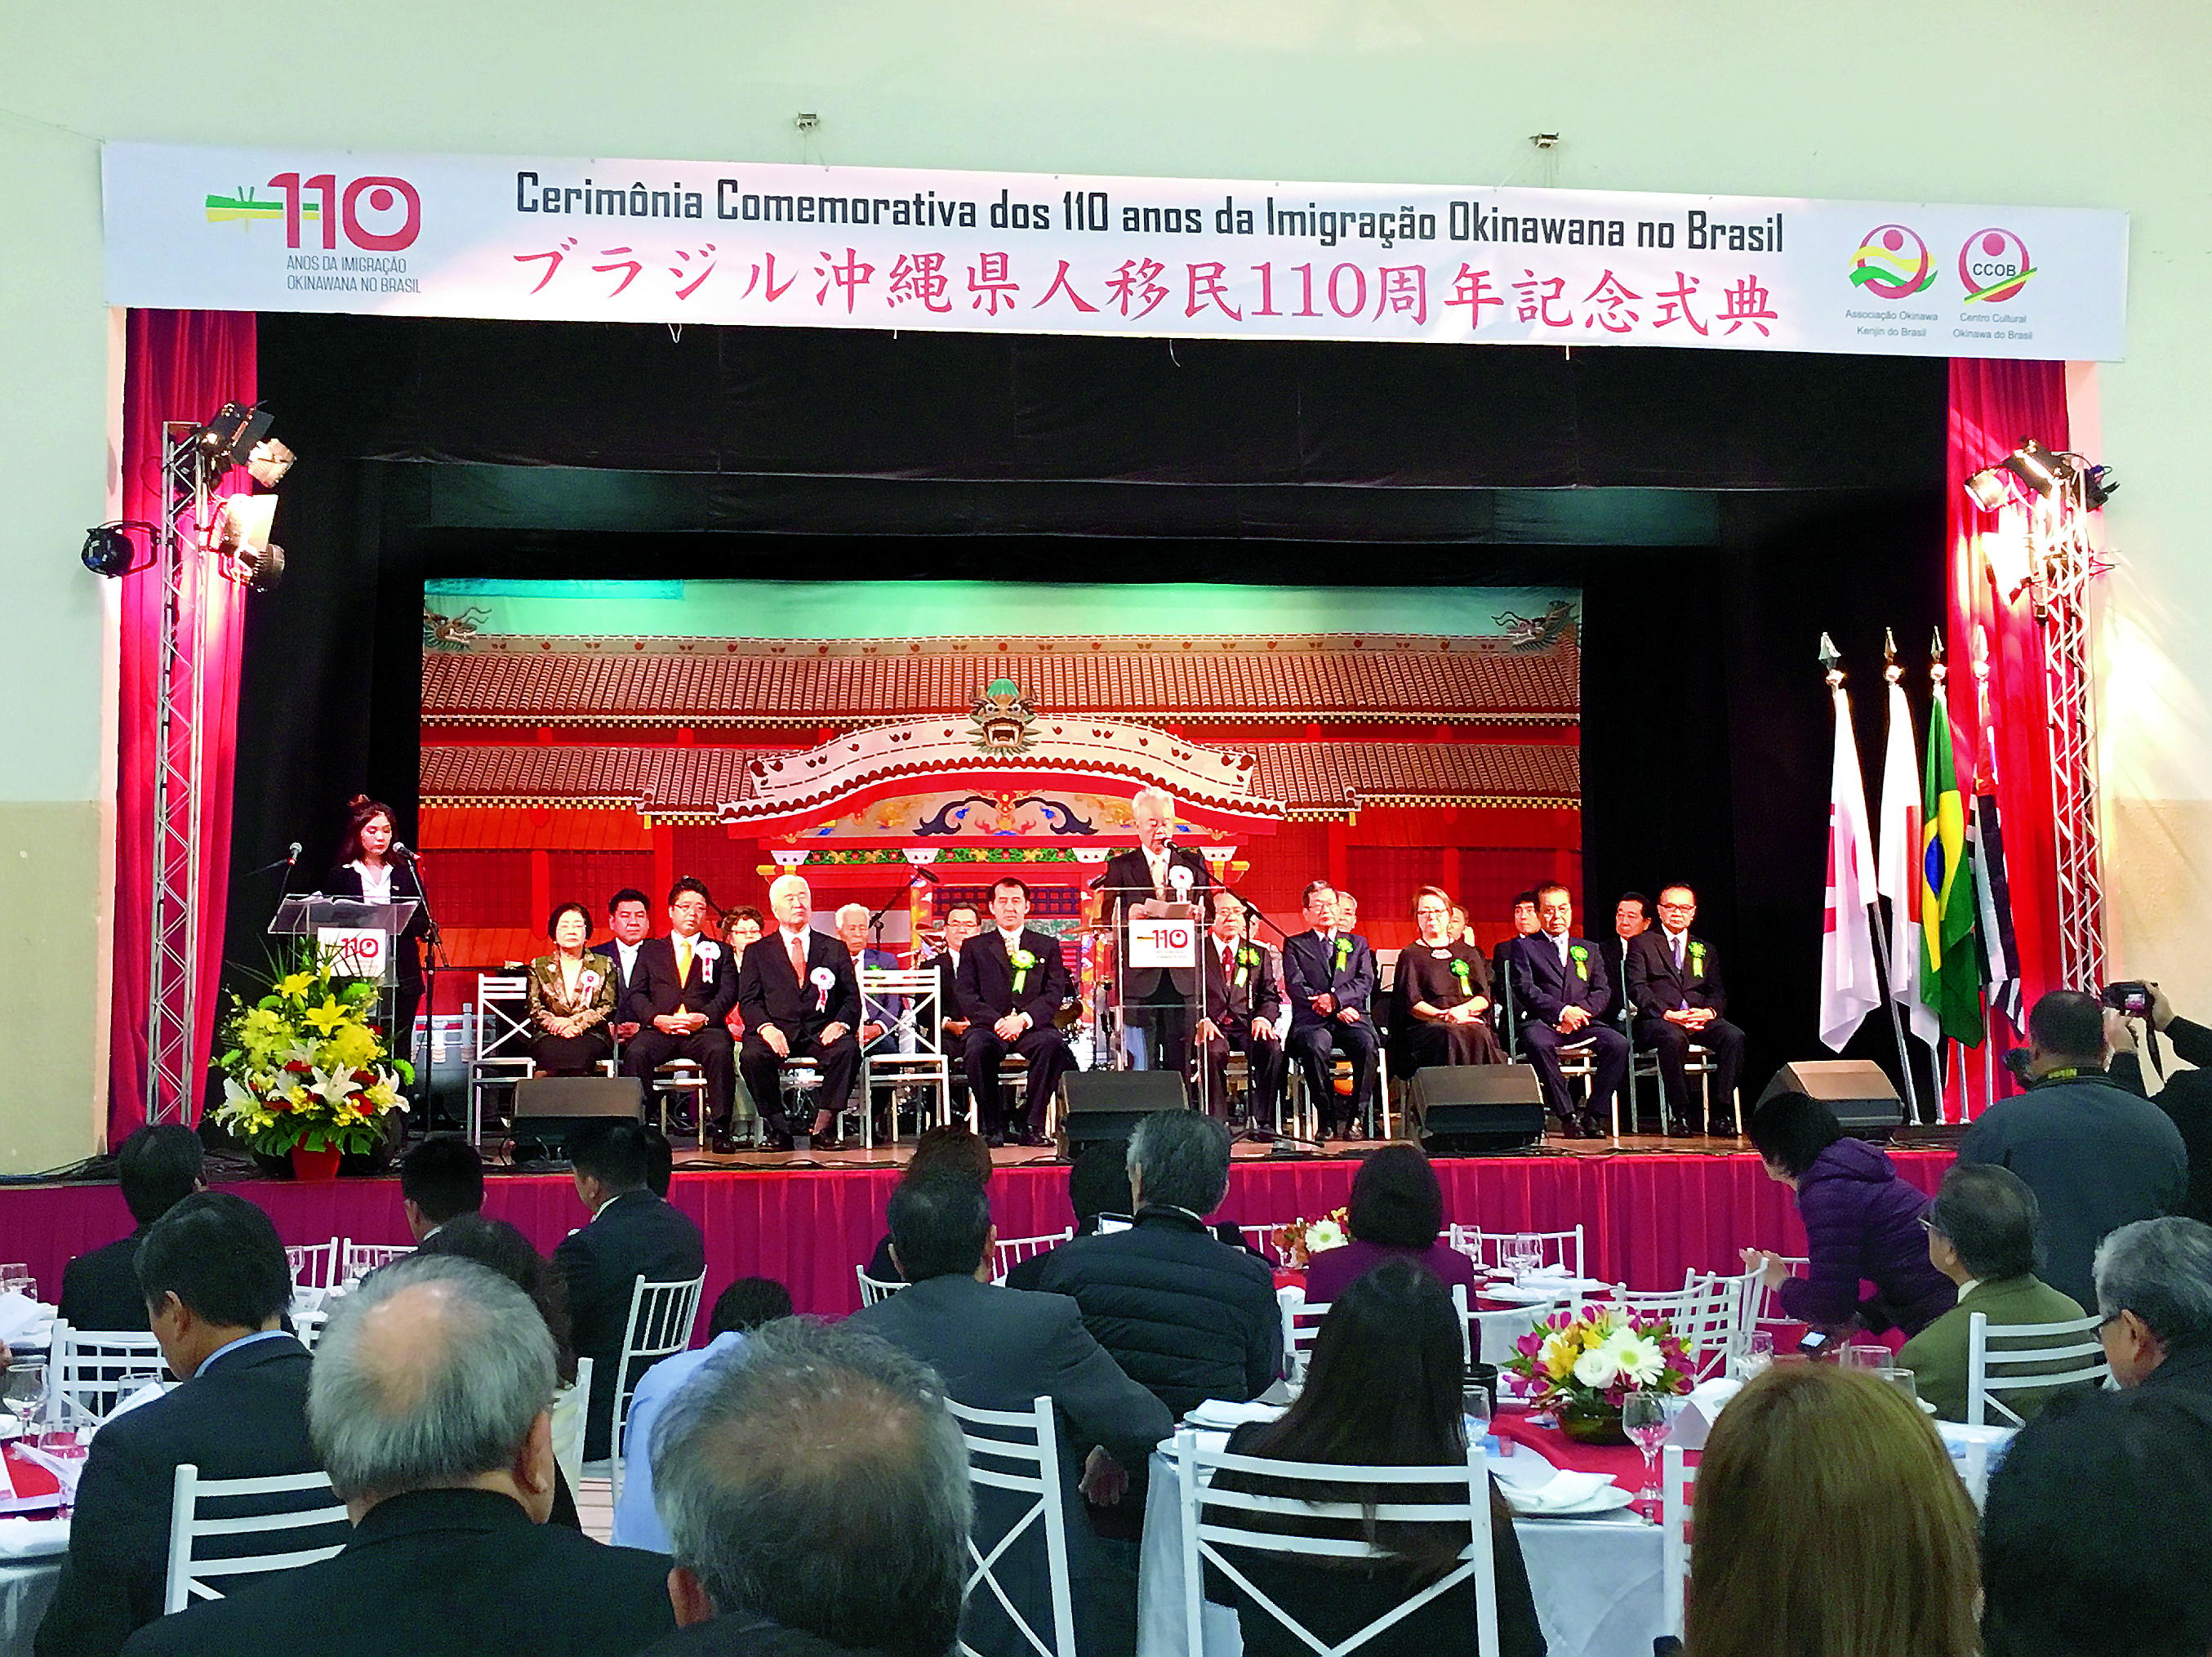 Celebrating 110 years of Okinawa to Brazil immigration